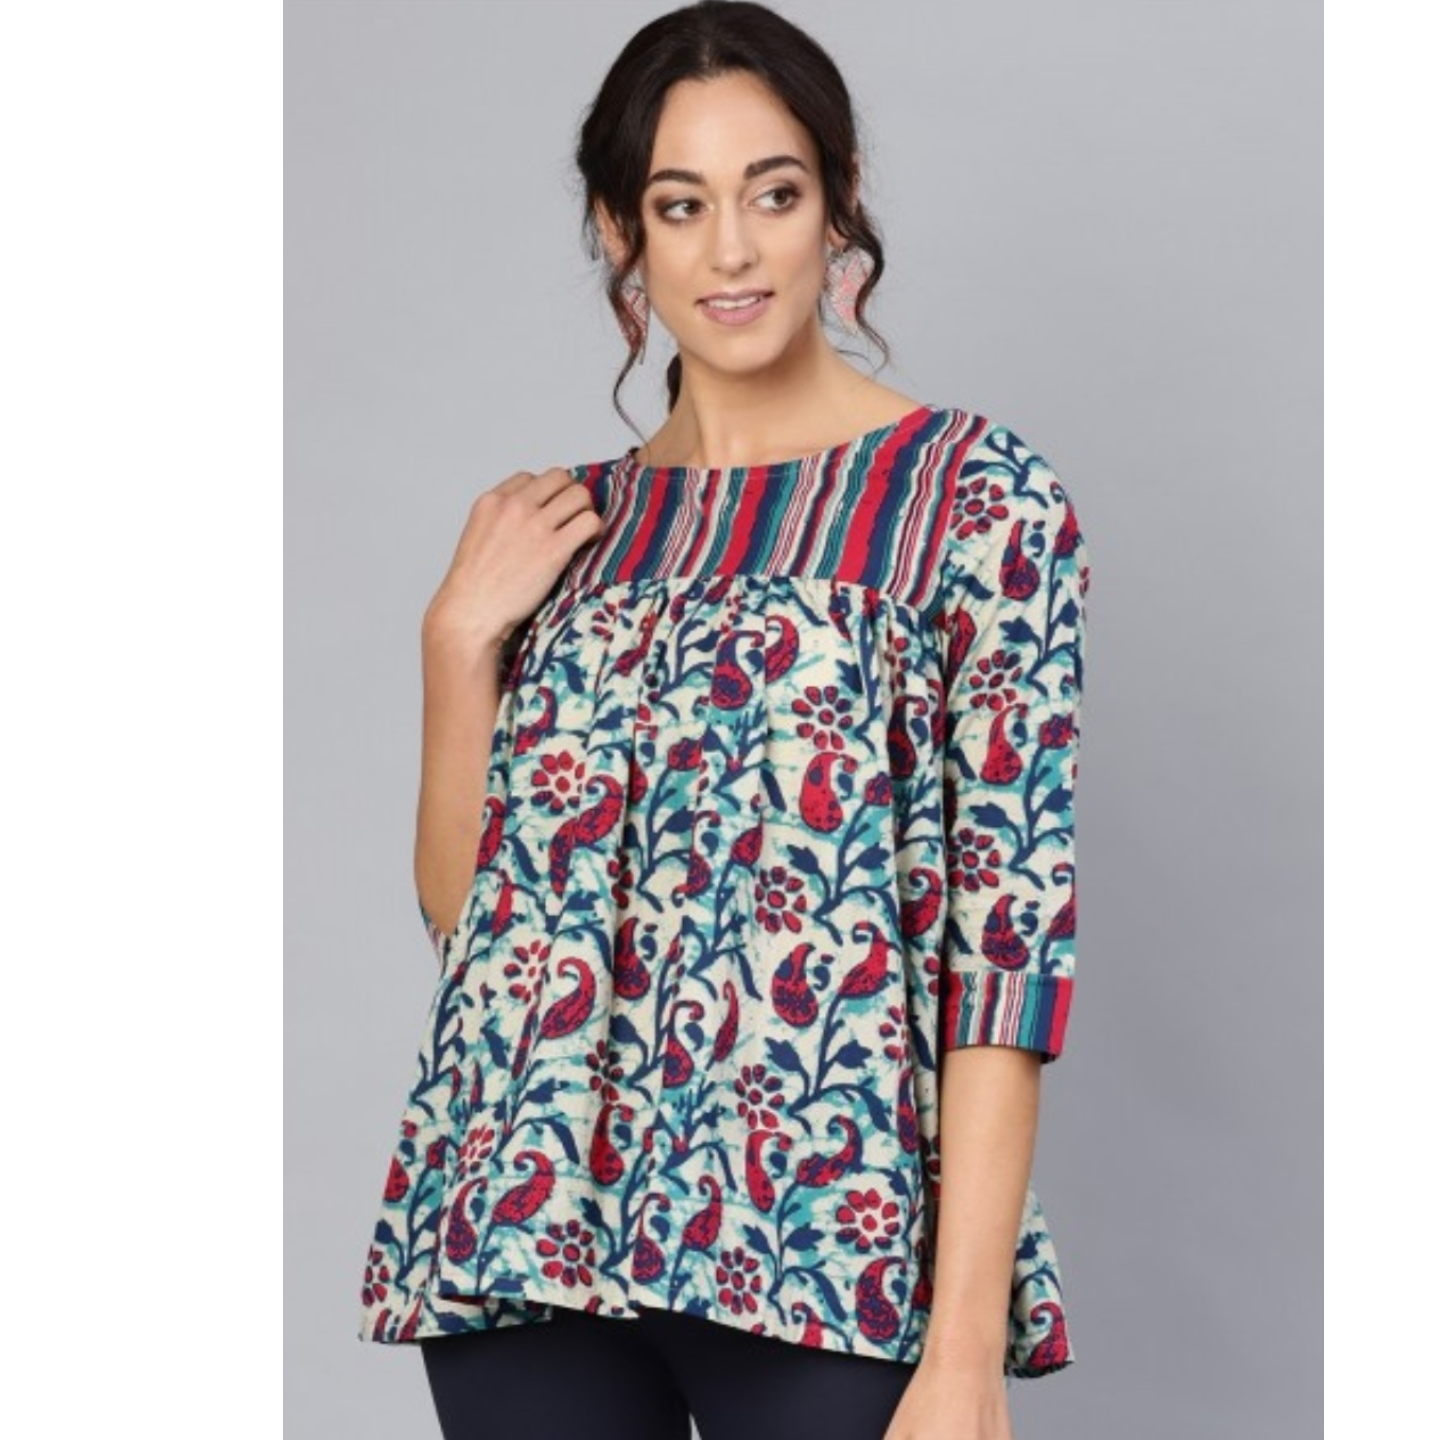 Multicolored Floral Printed Tunic